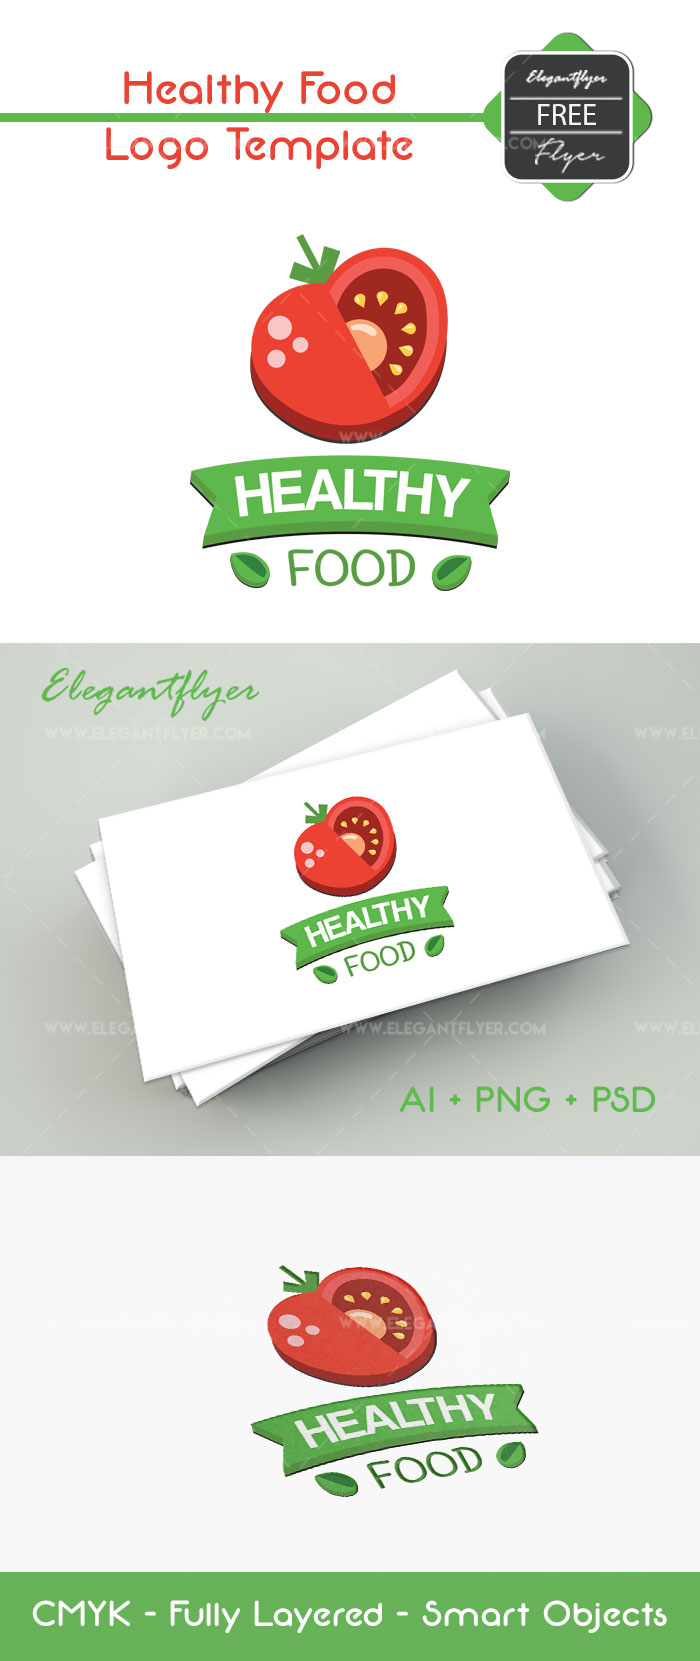 Healthy Food – Free Logo Template